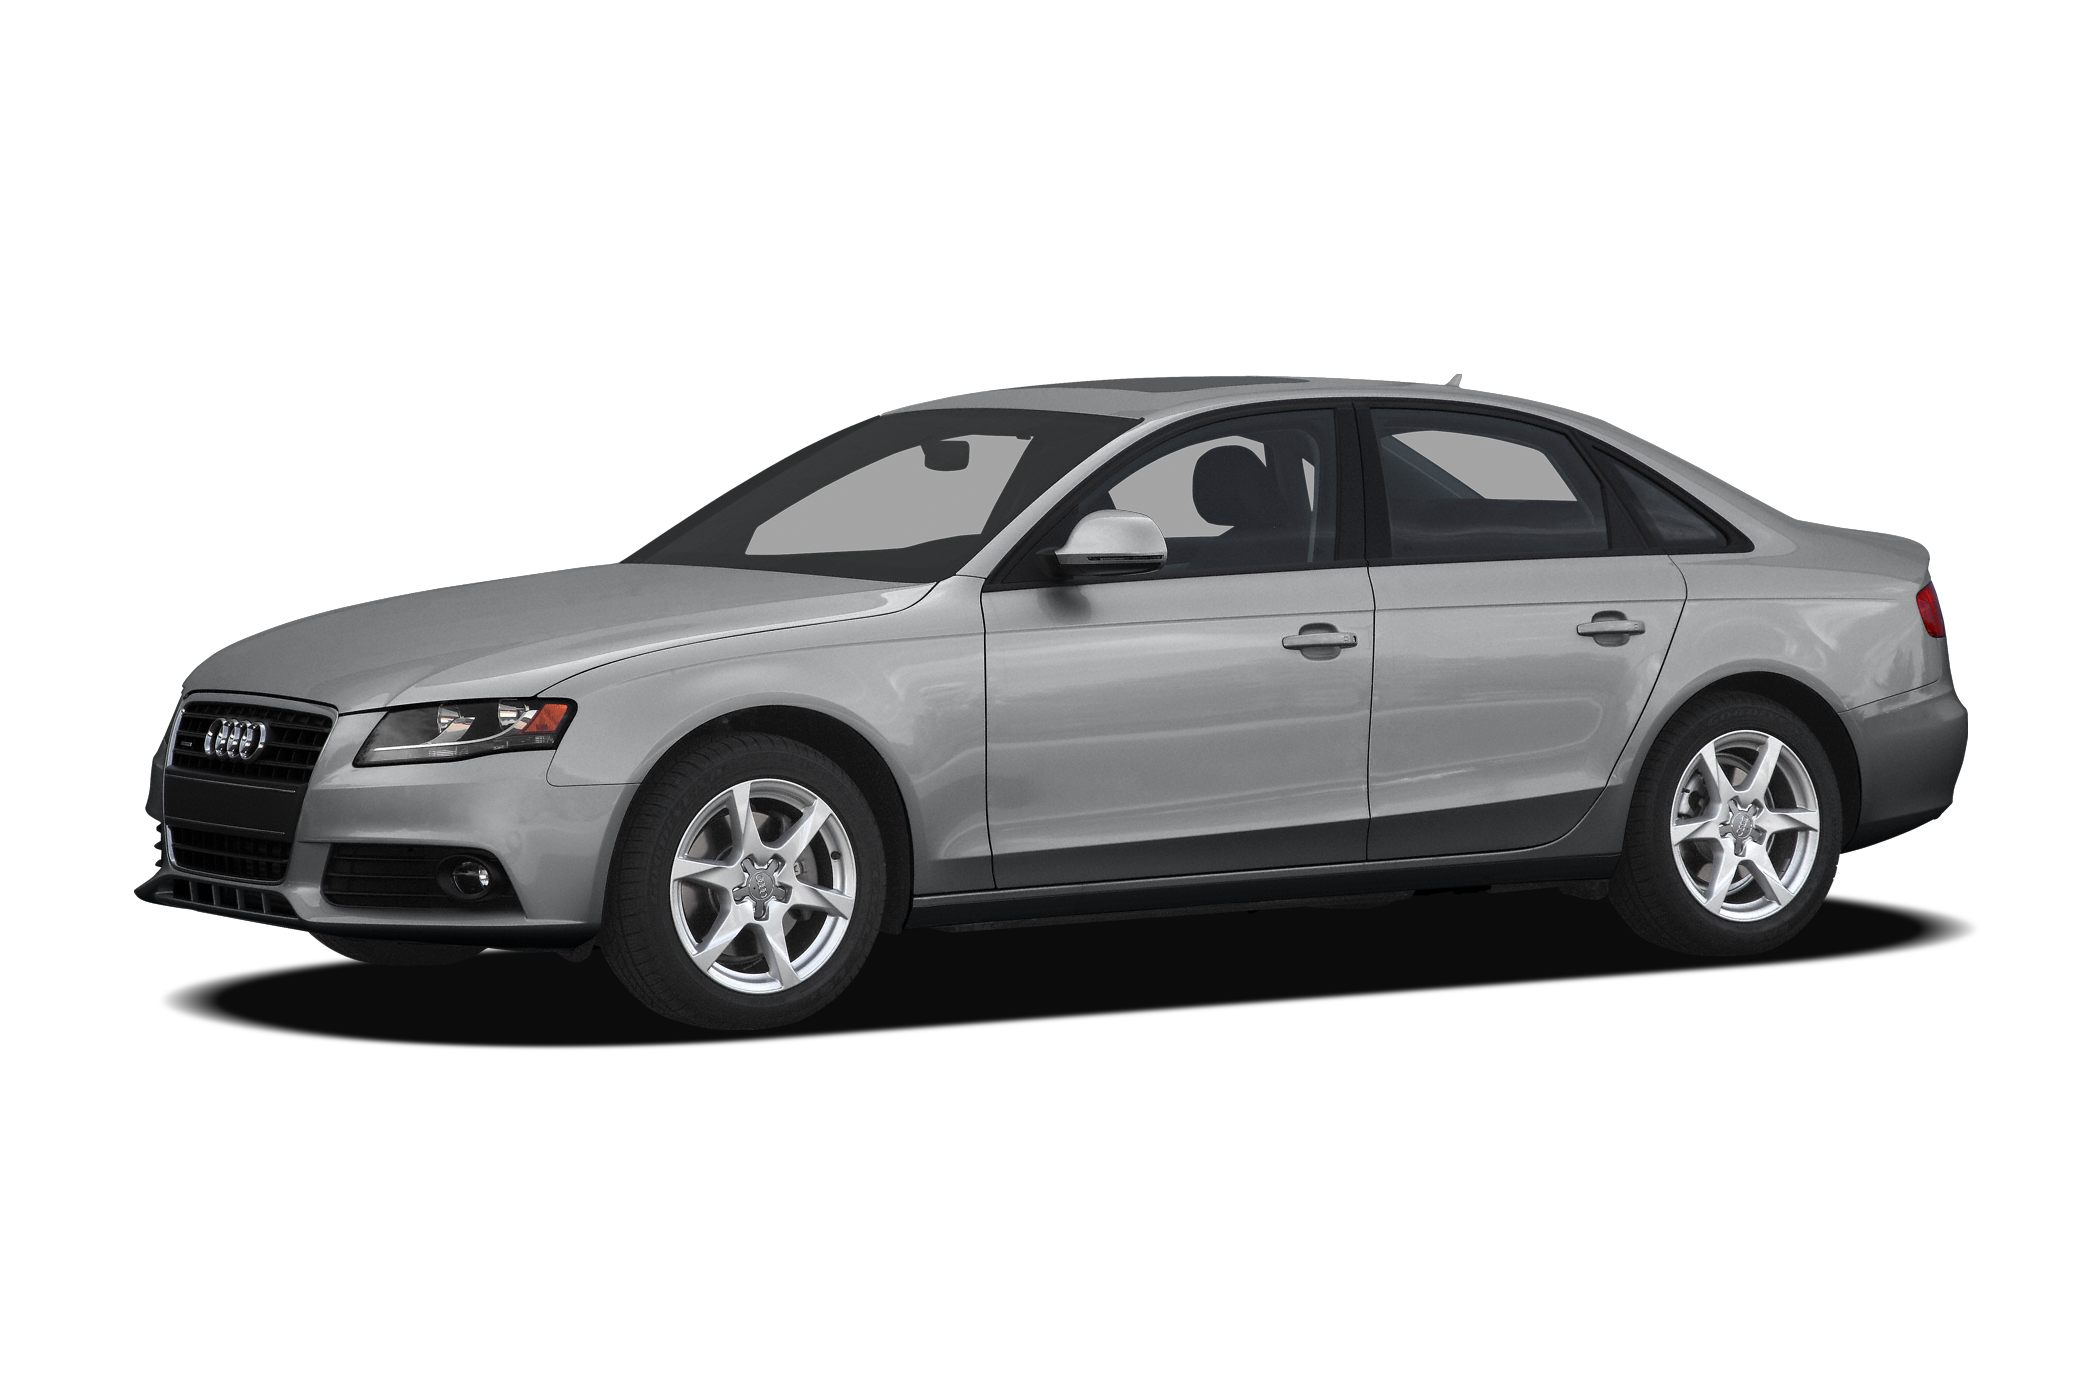 2011 Audi A4 2.0T Premium Quattro Sedan for sale in York for $20,991 with 64,376 miles.